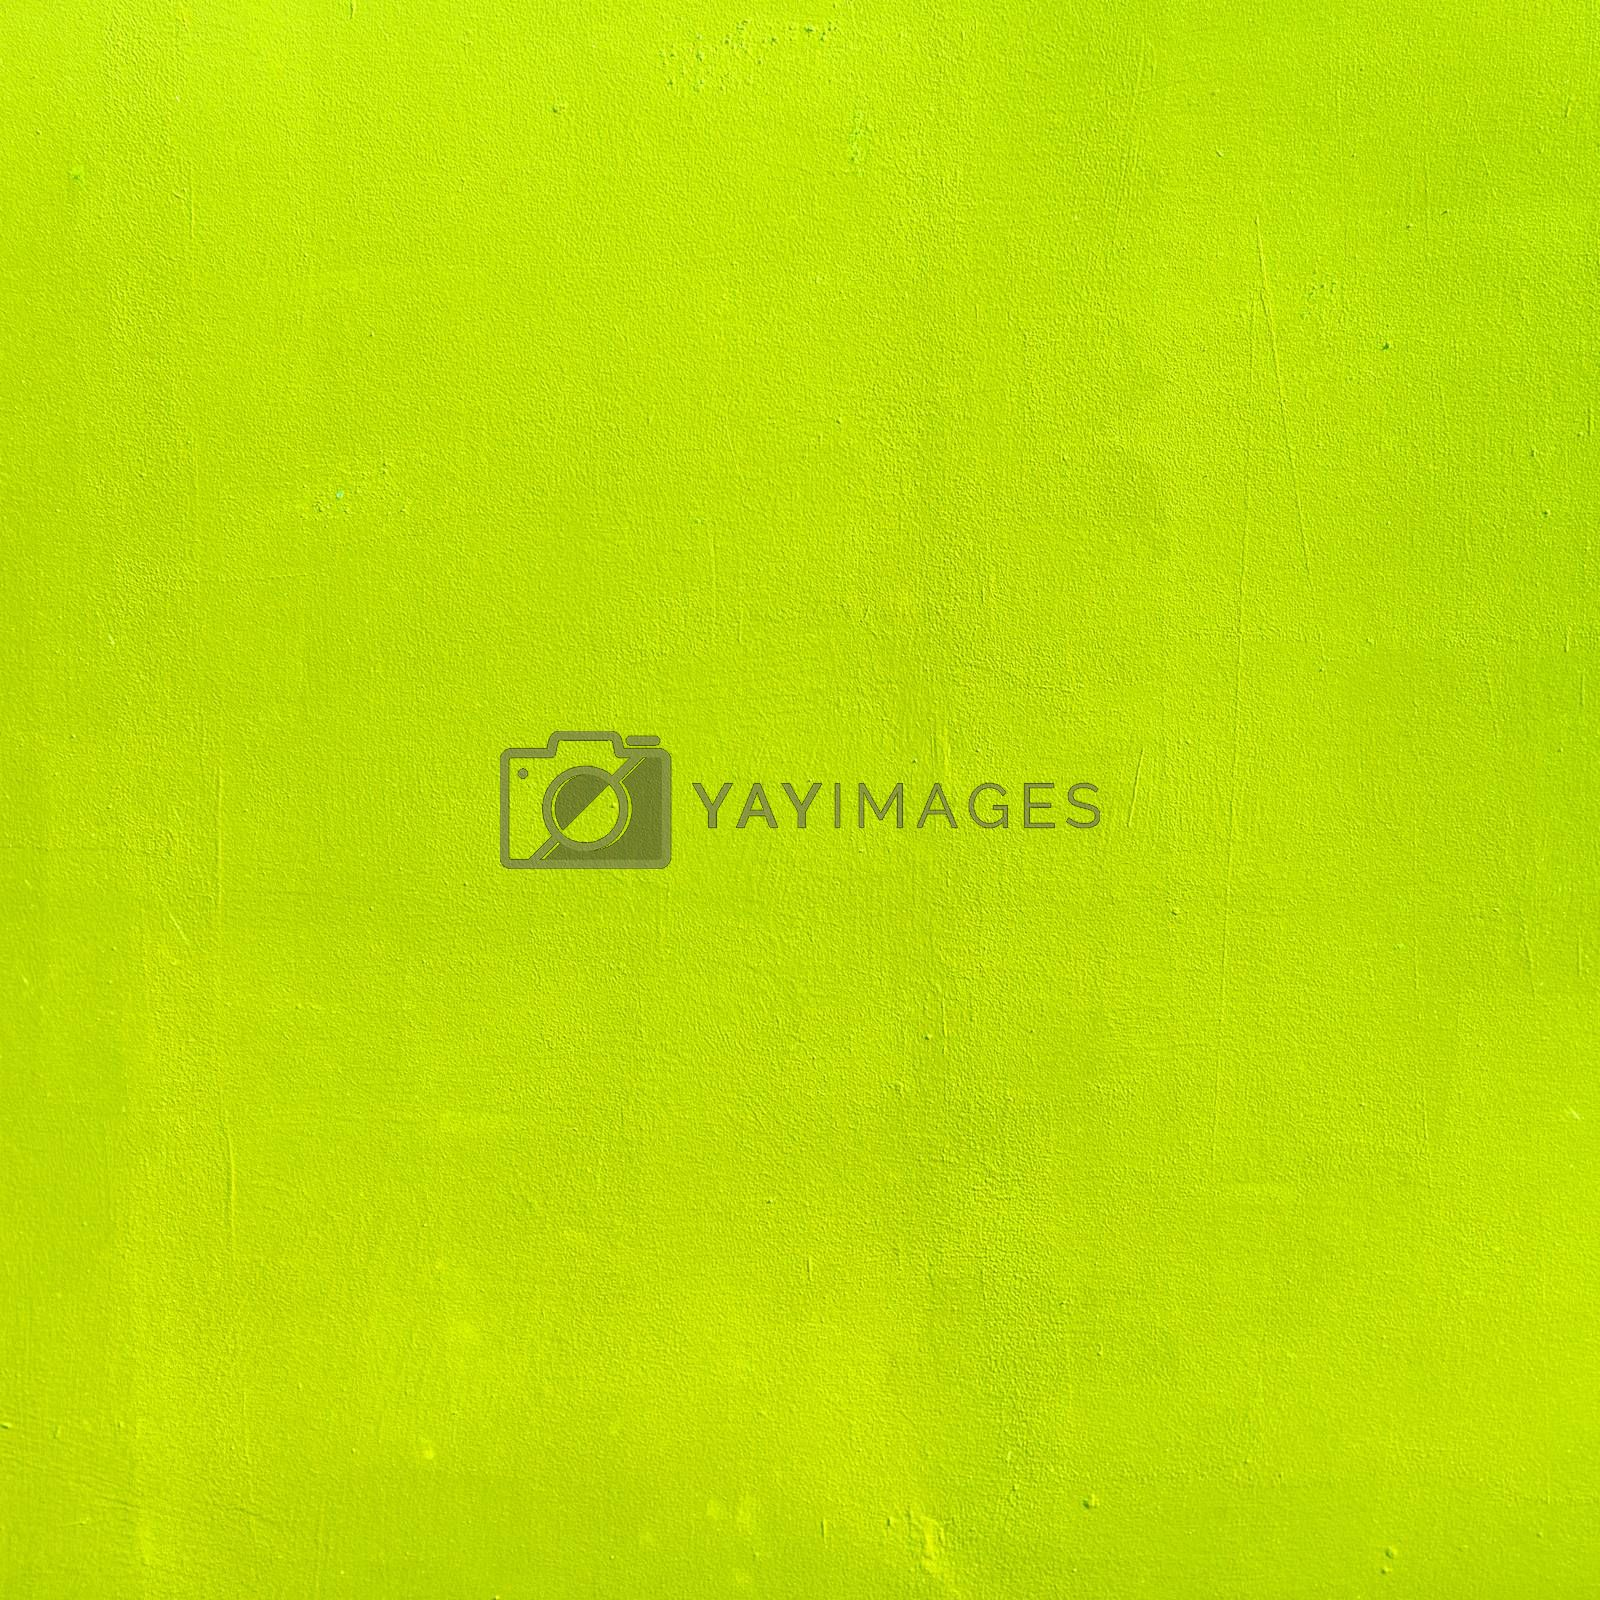 Royalty free image of green background by meinzahn